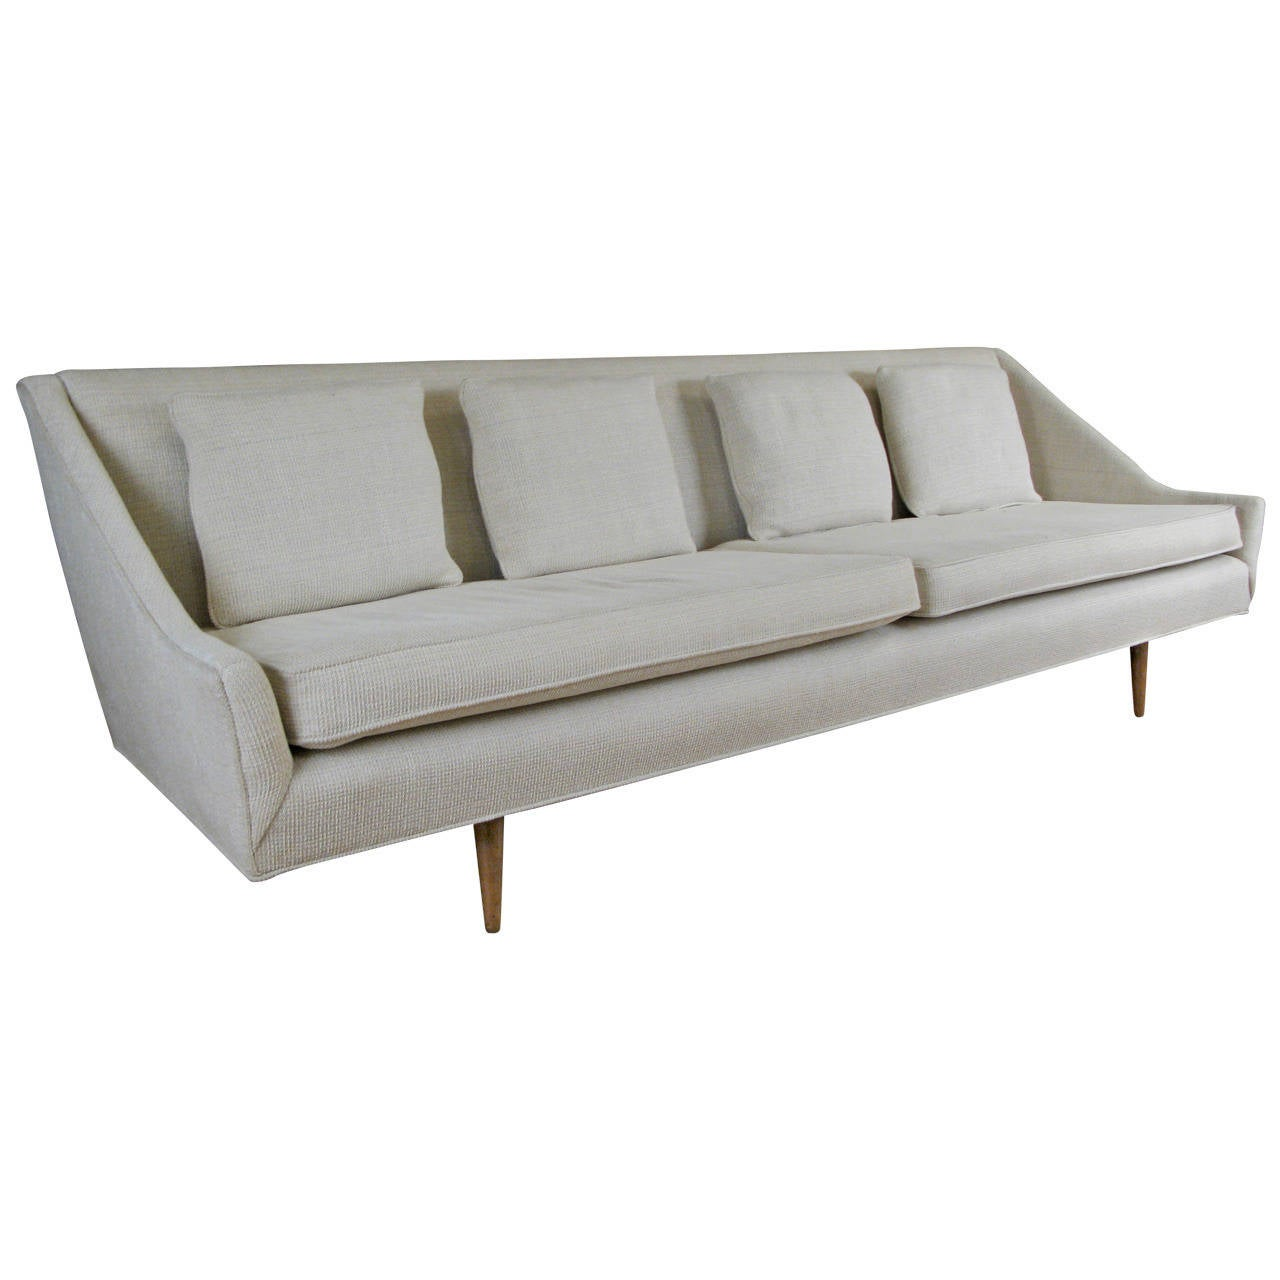 vintage modern 1950s long sofa at 1stdibs. Black Bedroom Furniture Sets. Home Design Ideas